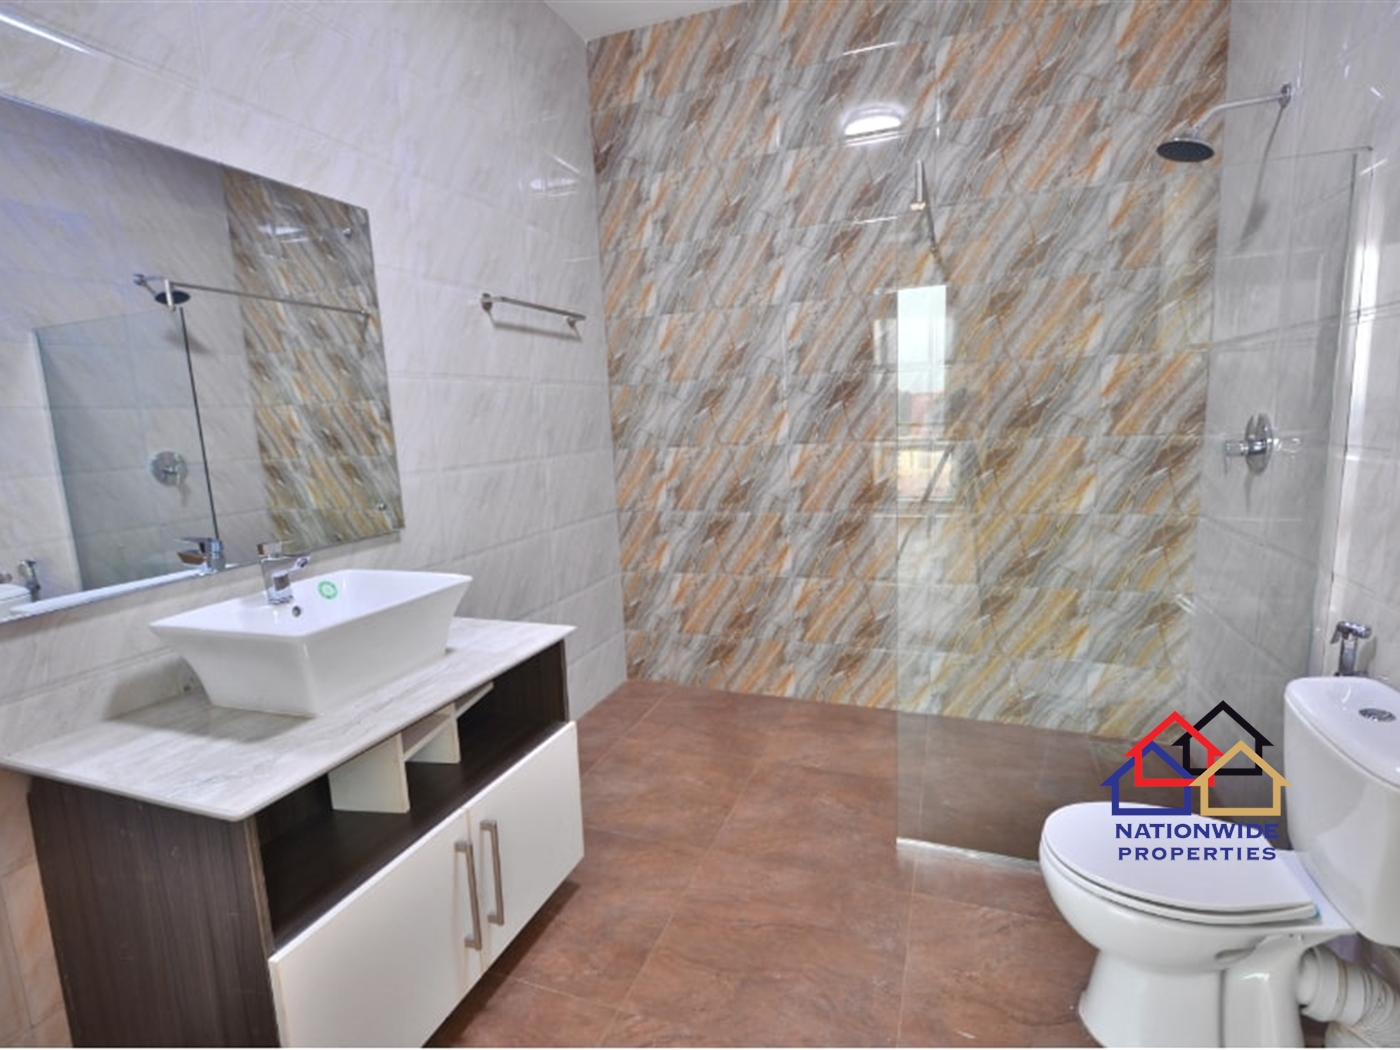 Apartment for rent in Mulago Kampala